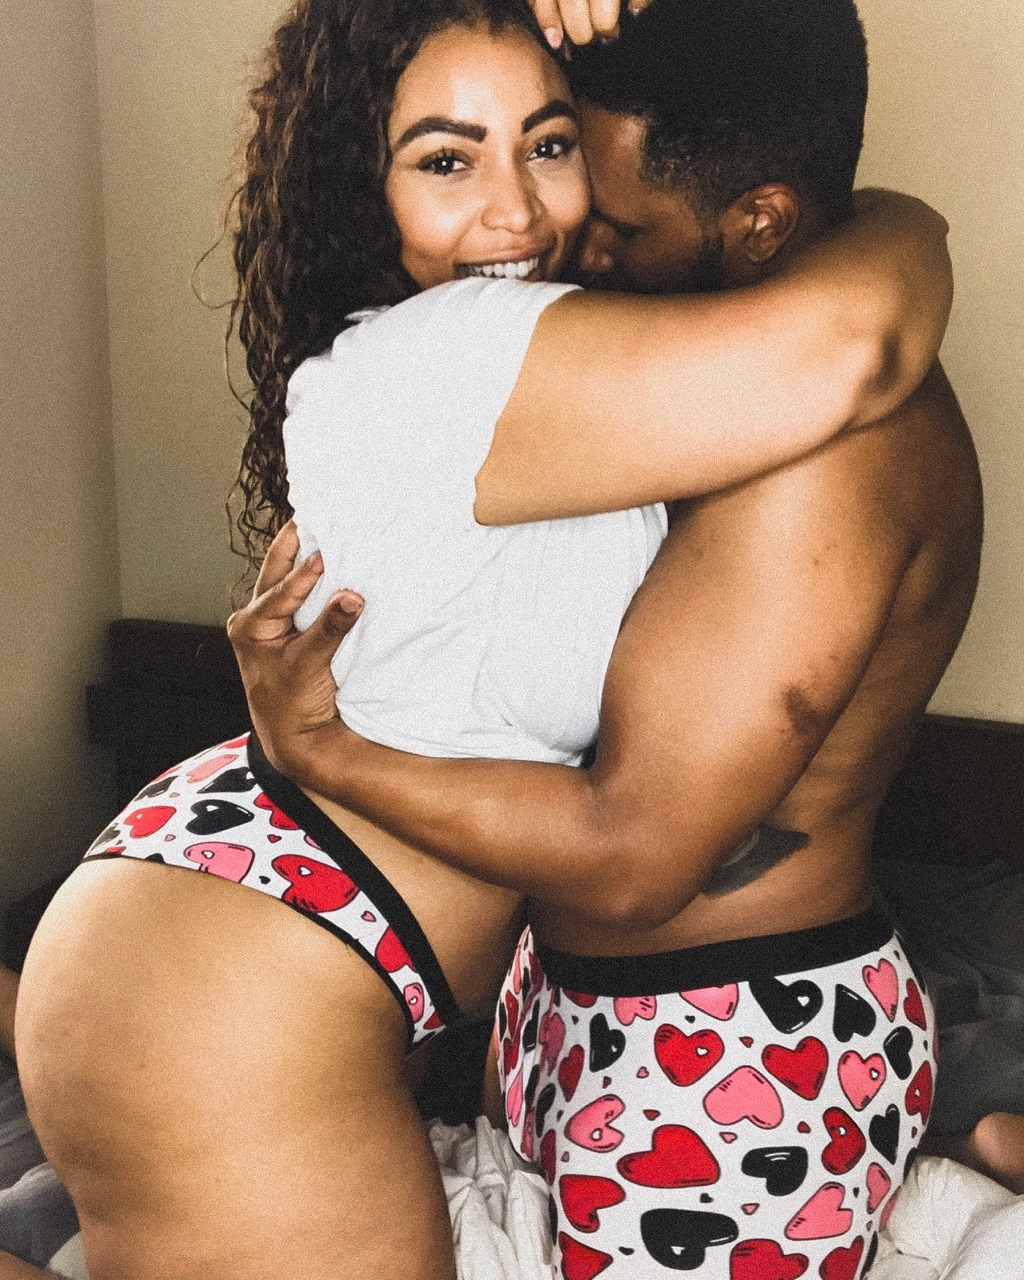 Candice Kelly and her Boyfriend snuggling in their MeUndies Matching Valentine's Day Set